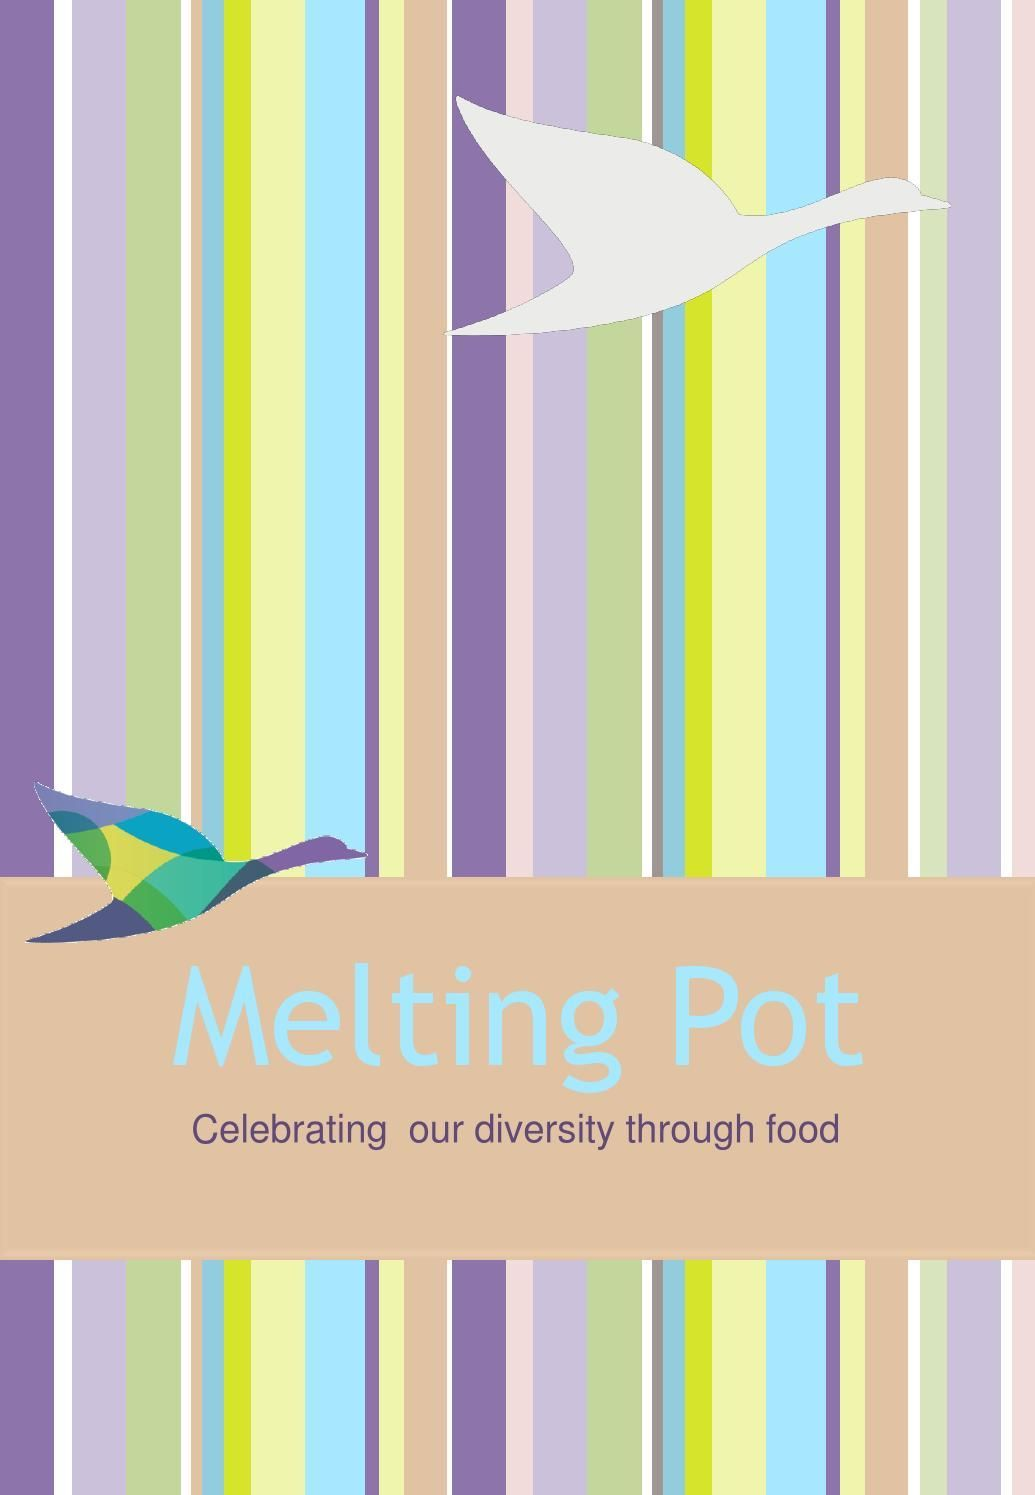 Melting Pot Recipe Book NSW ACT #meltingpotrecipes Melting Pot Recipe Book NSW ACT #meltingpotrecipes